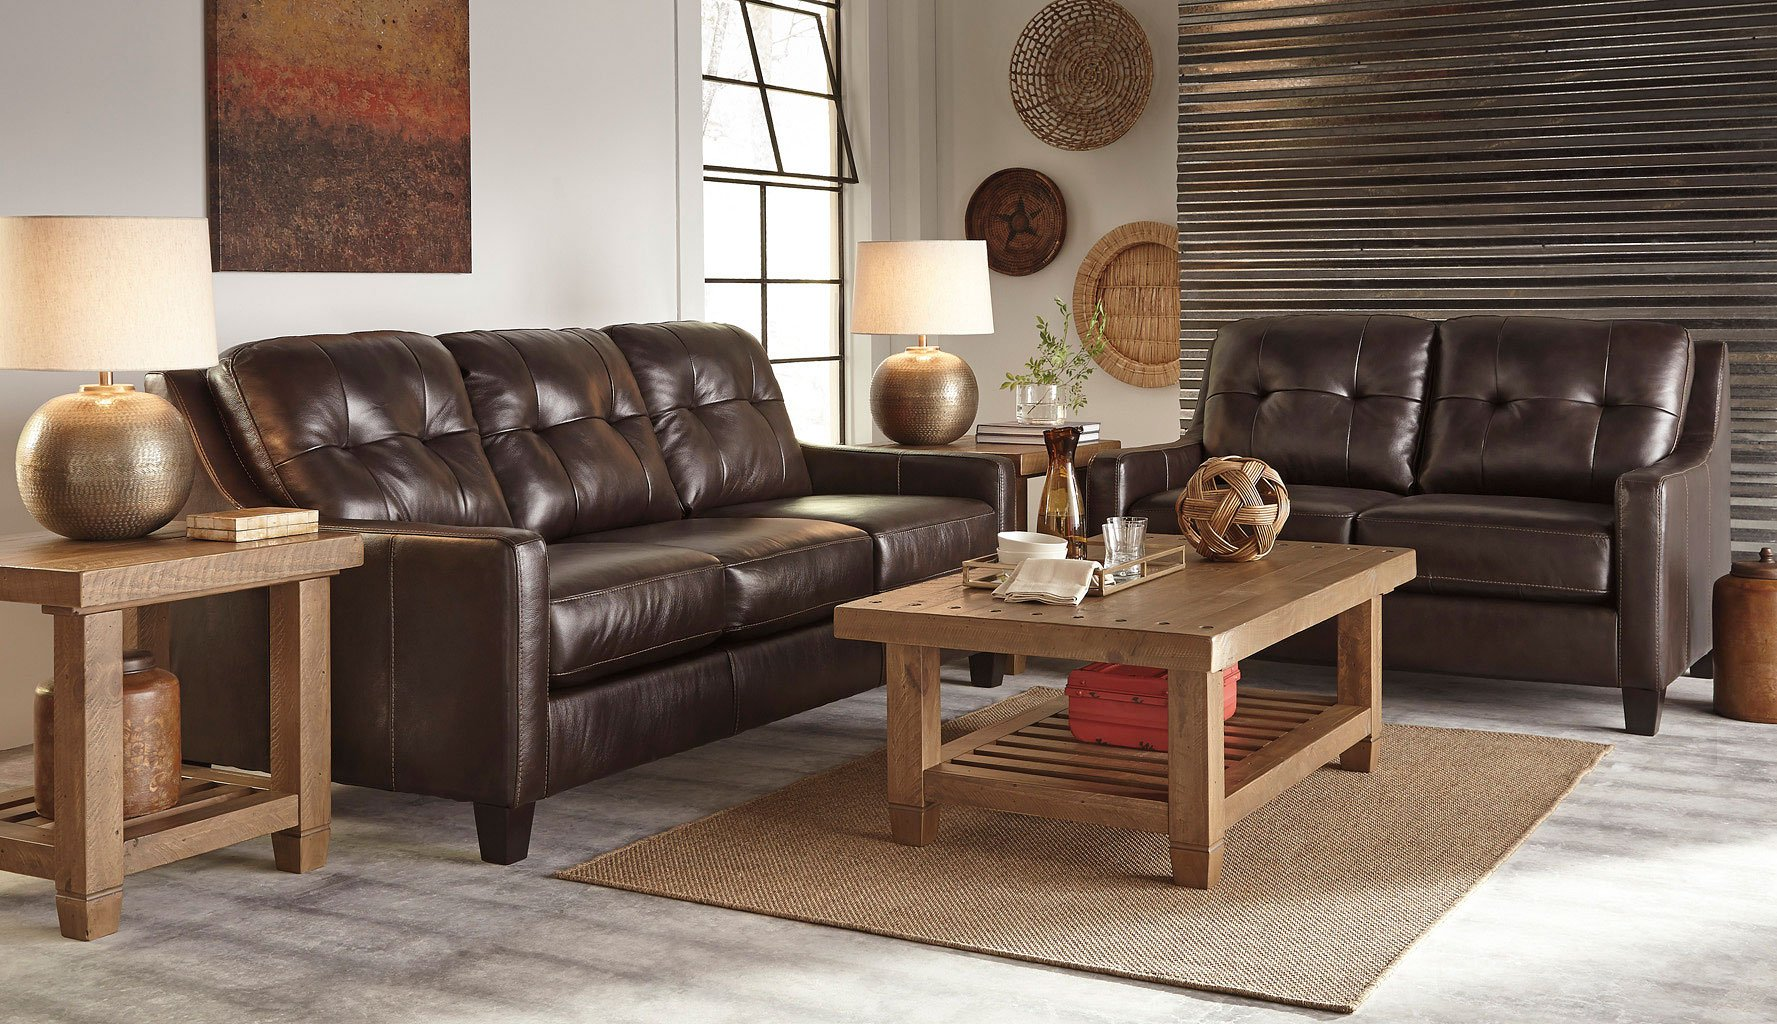 Okean mahogany living room set